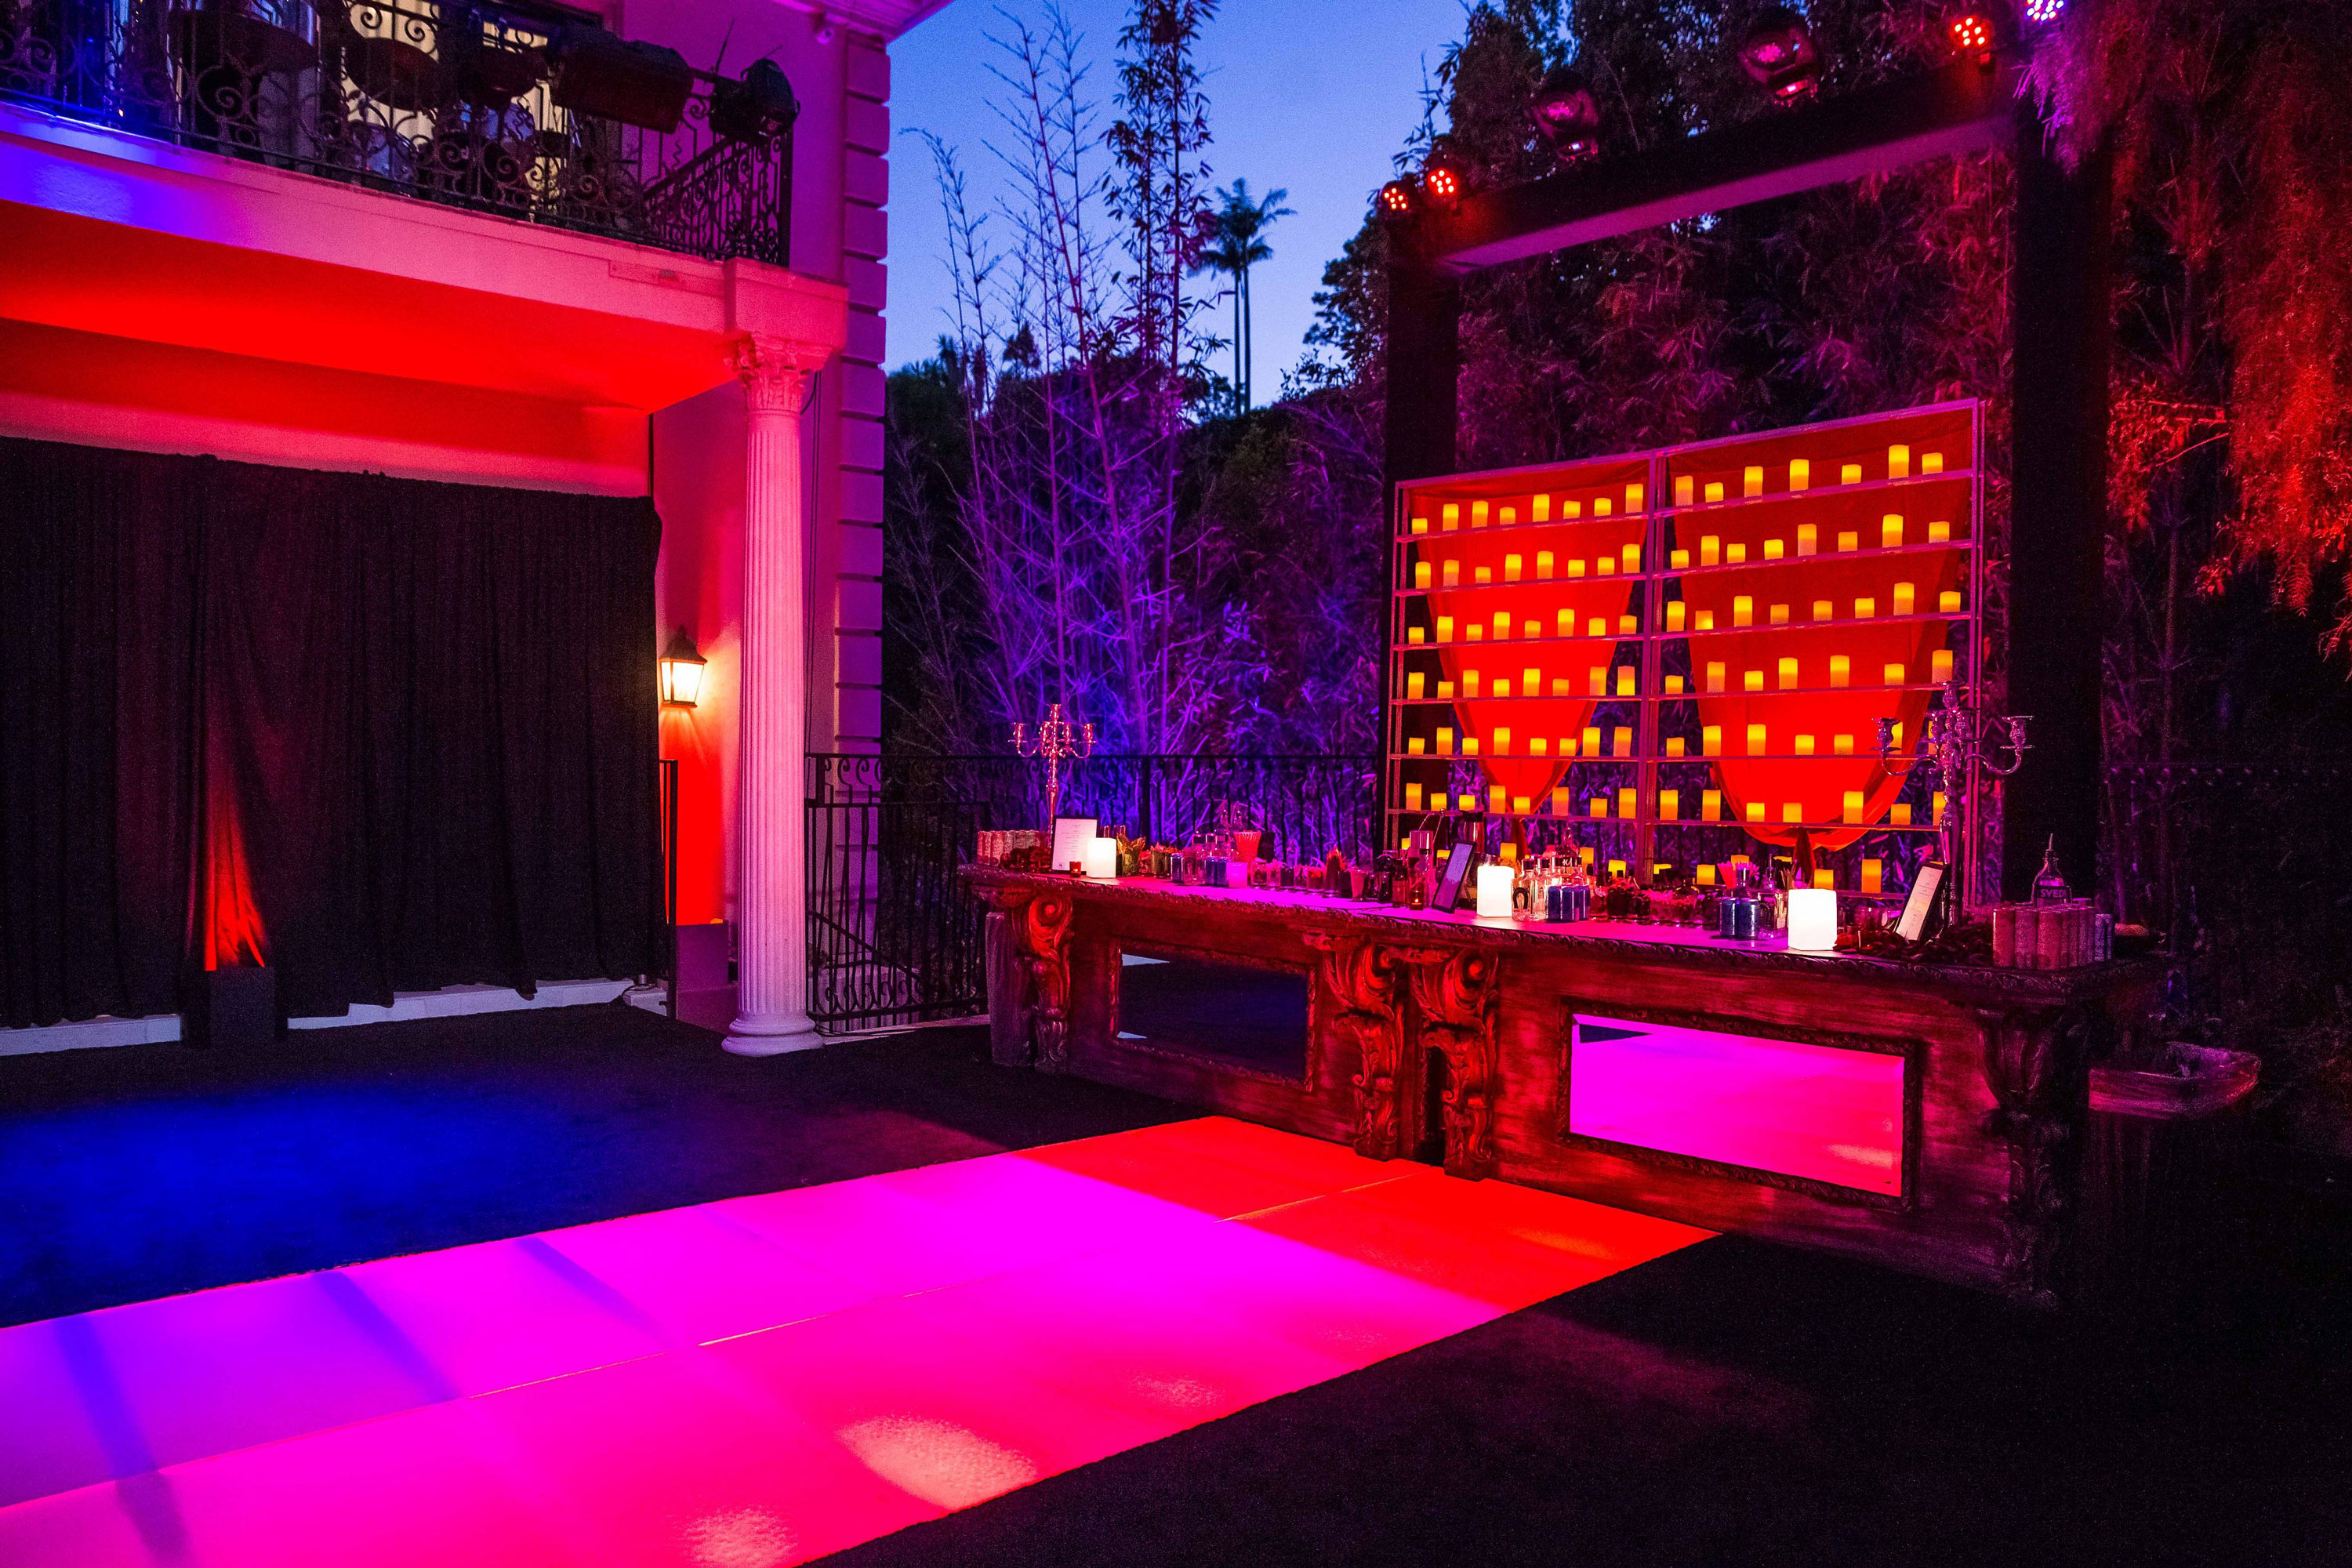 A bar with red lights at Dorit Kemsley's party